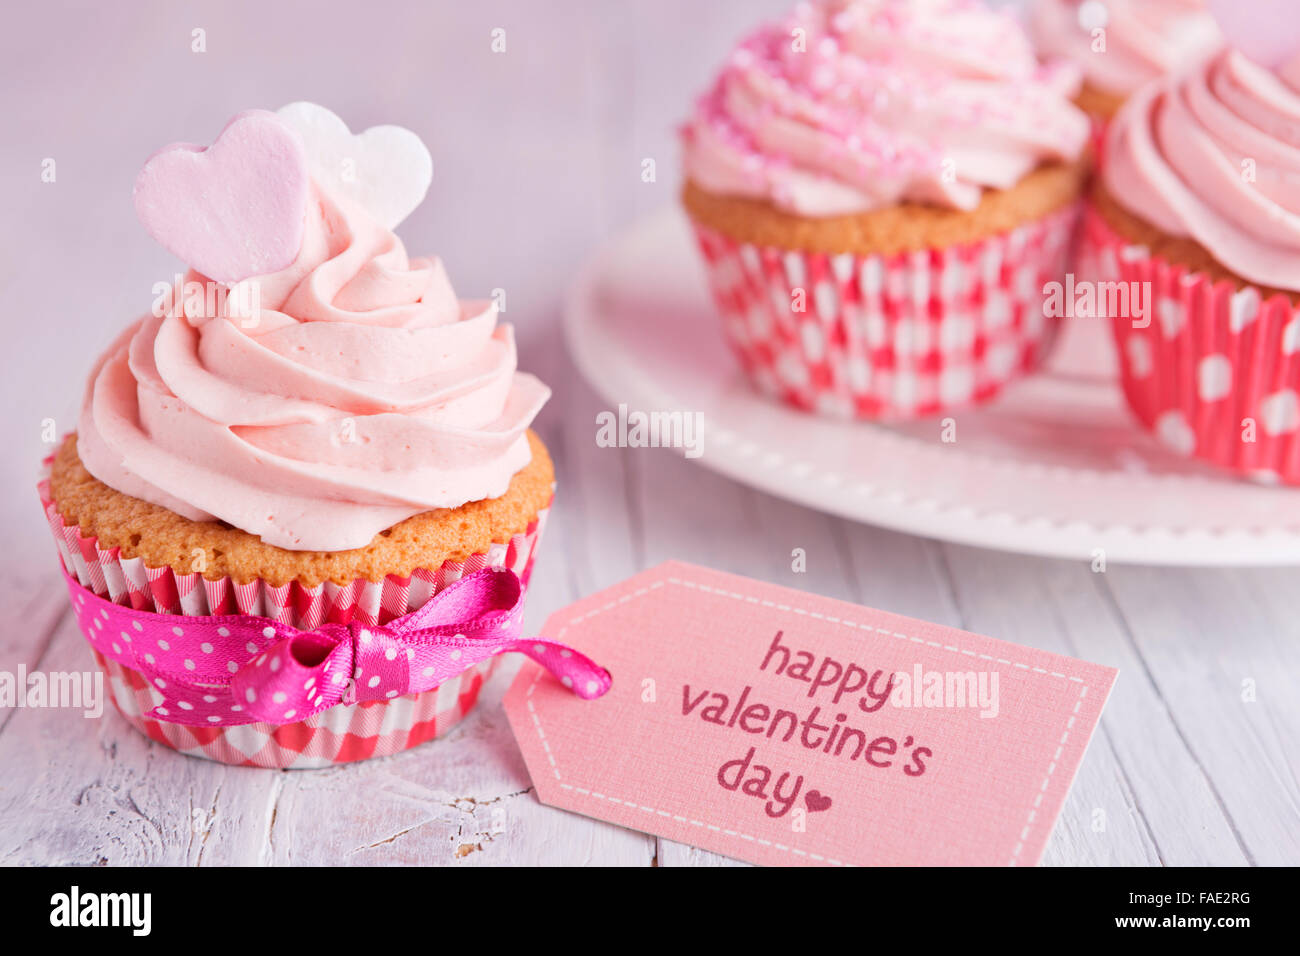 Pink Valentine Cupcakes With The Words Happy Valentine S Day On A